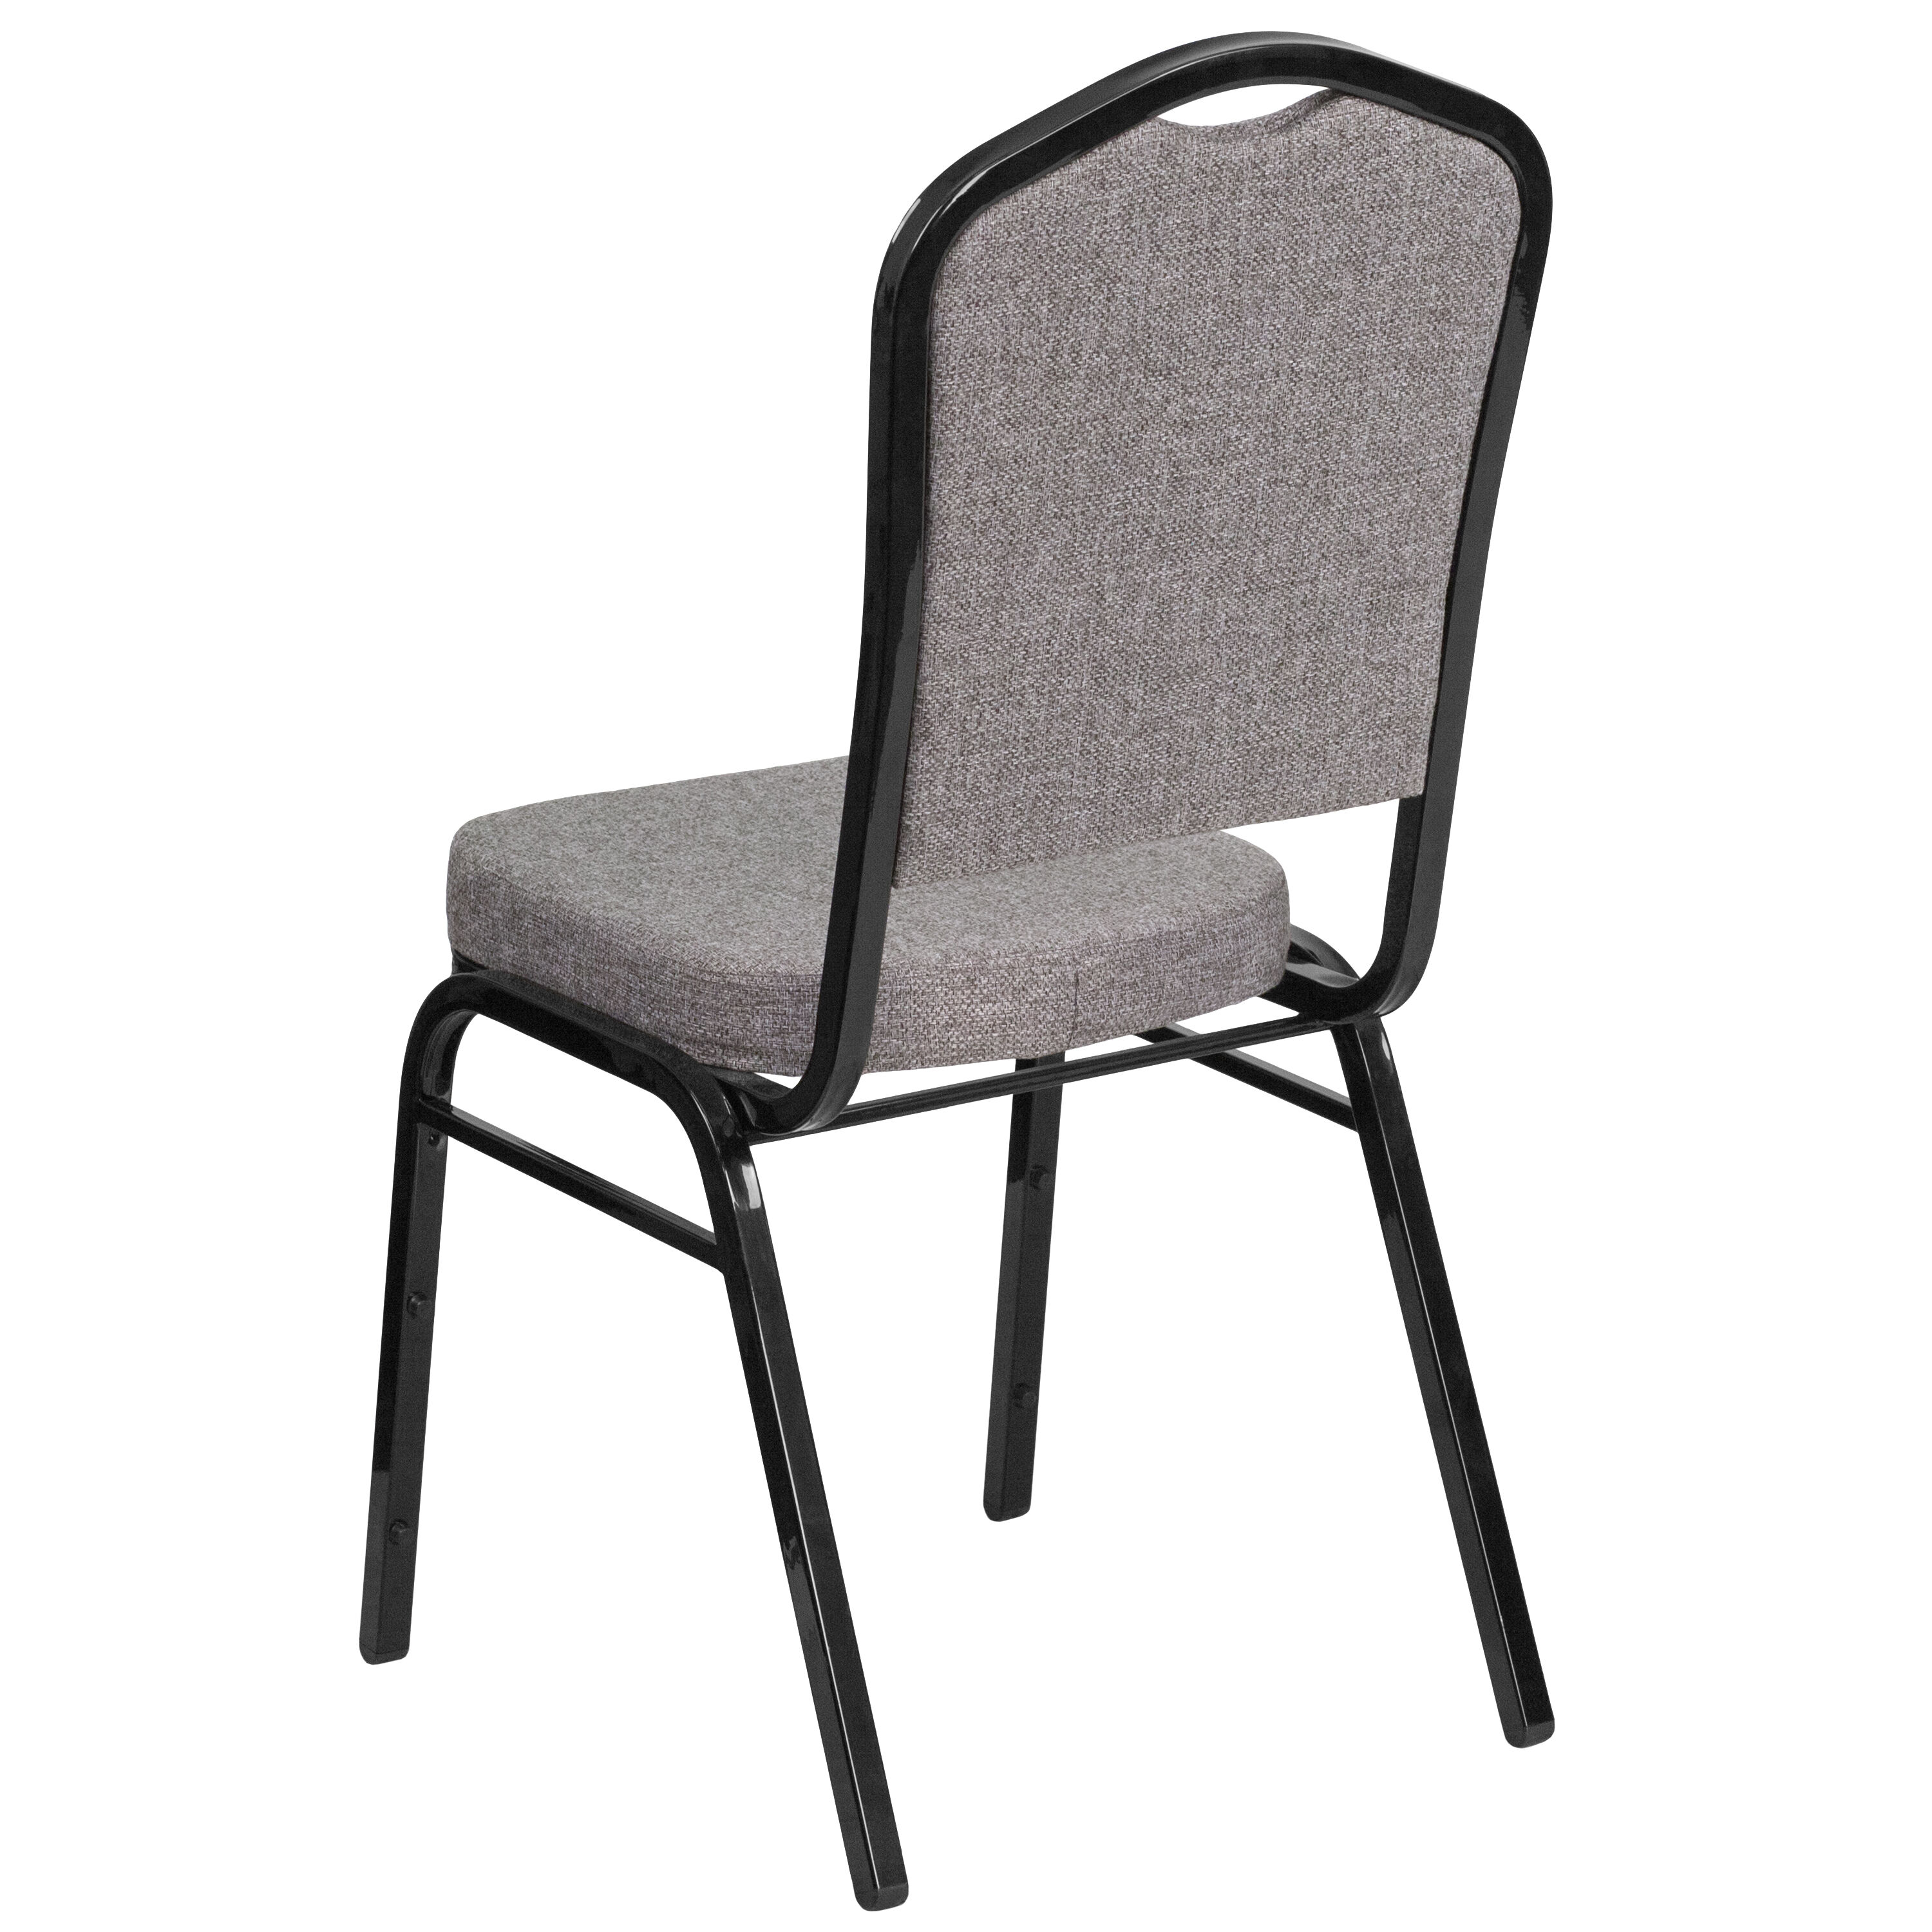 Flash Furniture HERCULES Series Crown Back Stacking Banquet Chair In Gray  Fabric   Black Frame FD C01 B 5 GG | StackChairs4Less.com